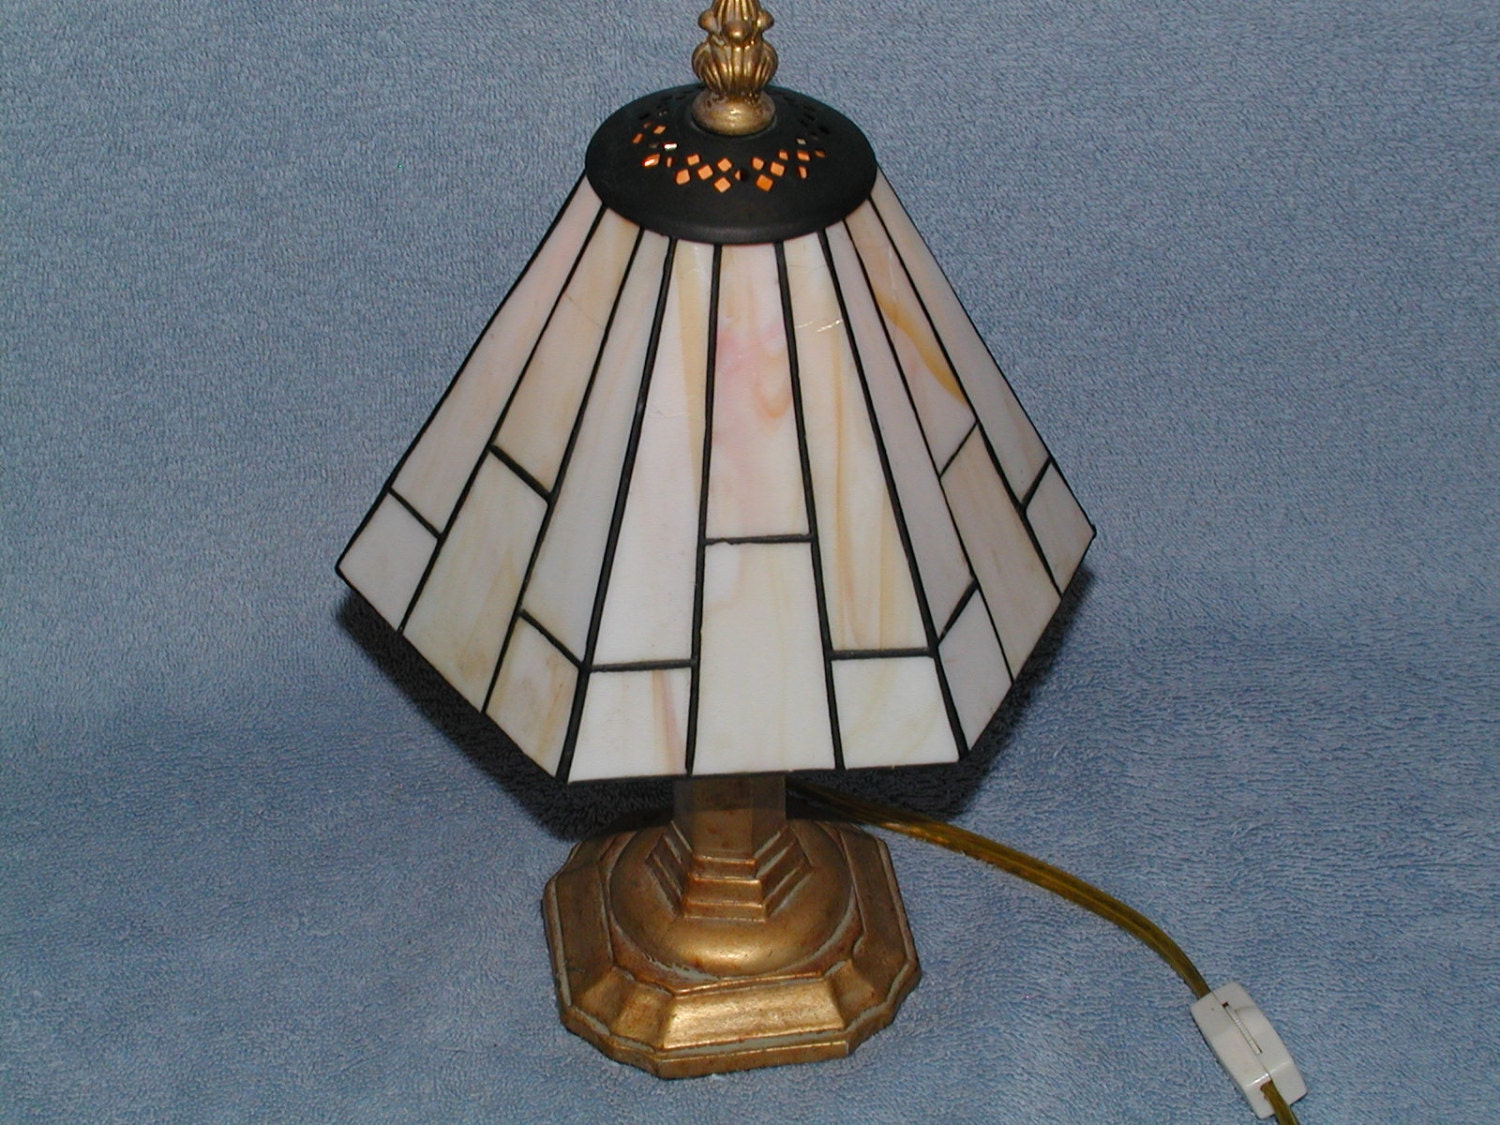 Wright Brothers Stained Glass Lamp : Stained glass lamp frank lloyd wright geometric theme